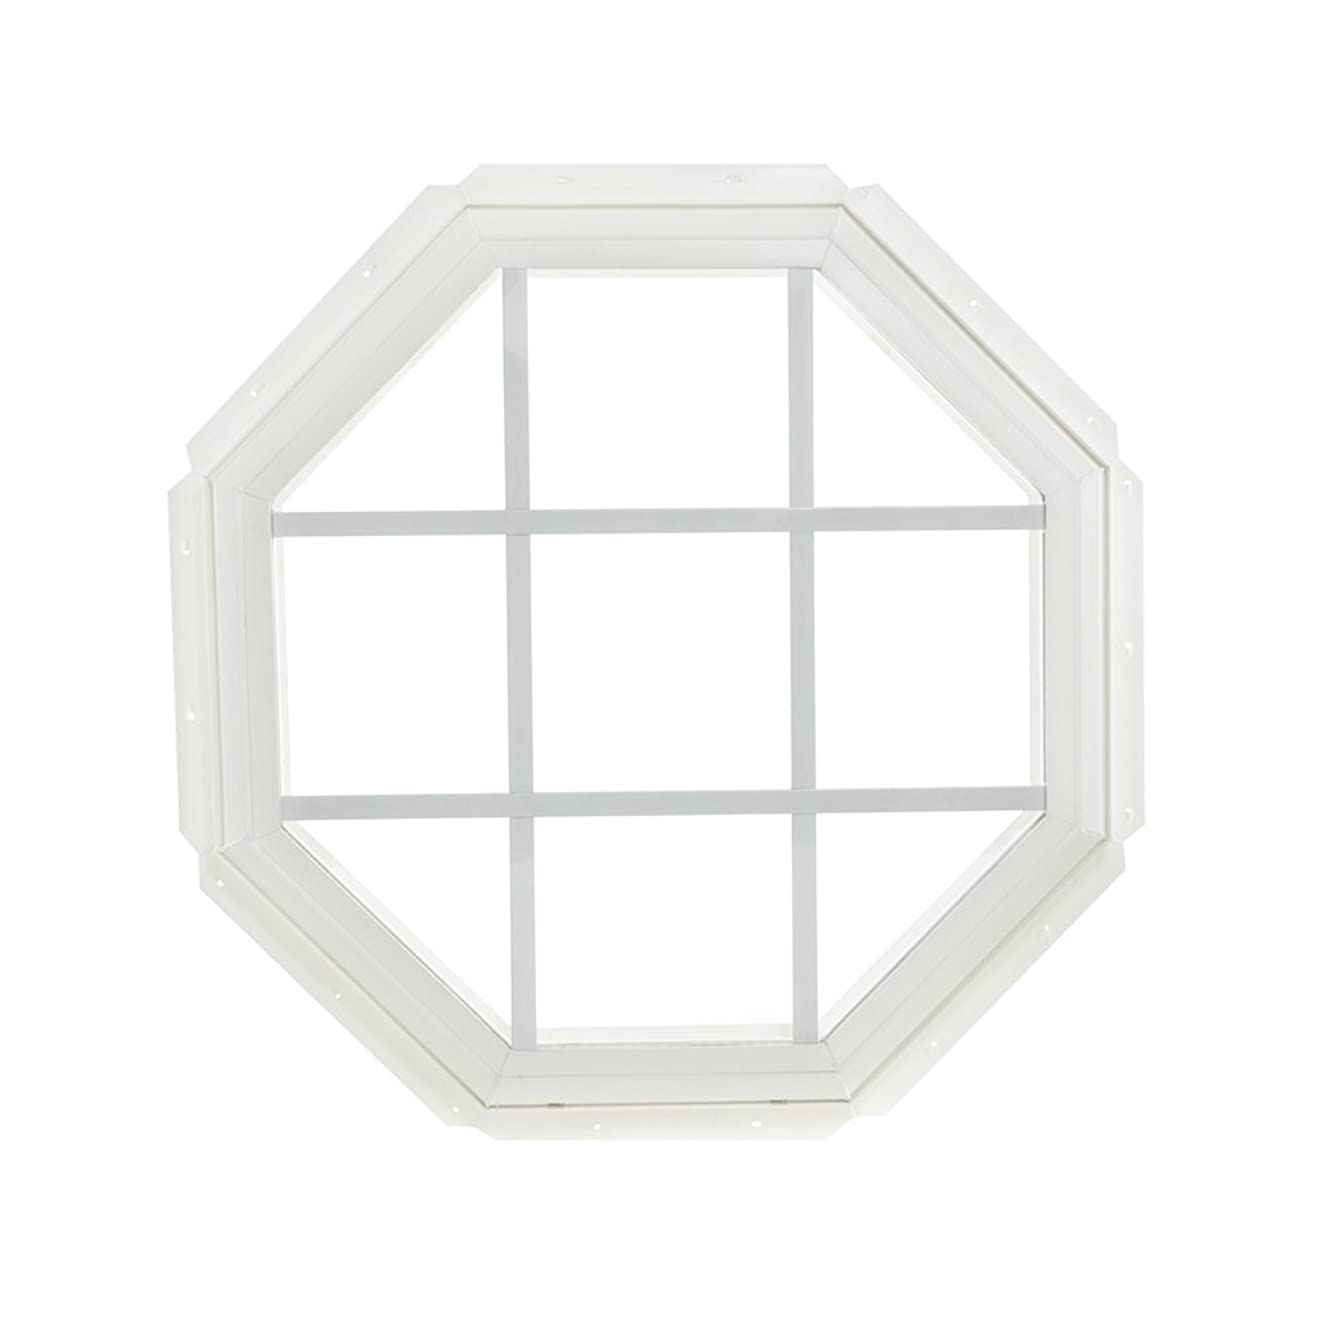 Park Ridge Vinyl Octagon Fixed Window with Insulated Clear Glass & Grids, 22